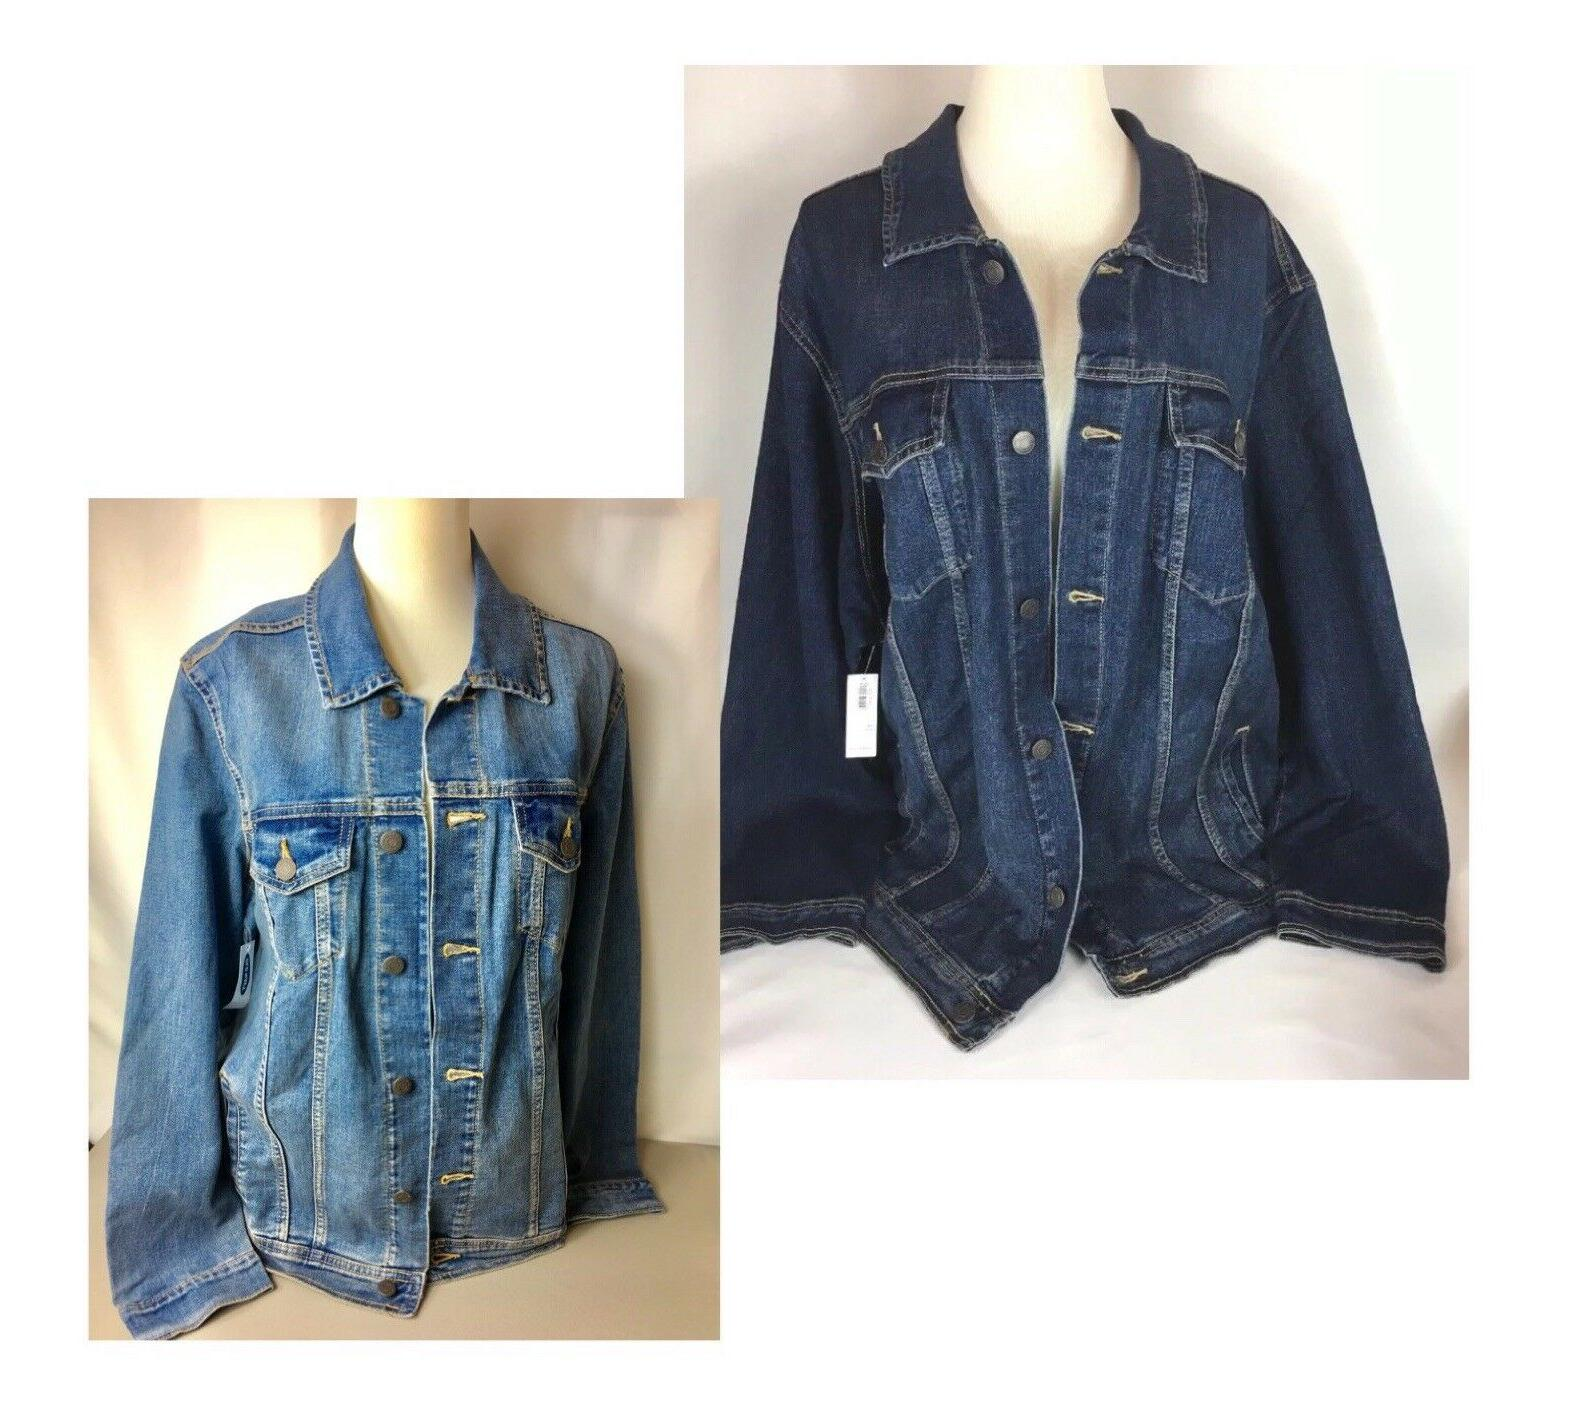 denim jackets plus size 1x 2x 3x